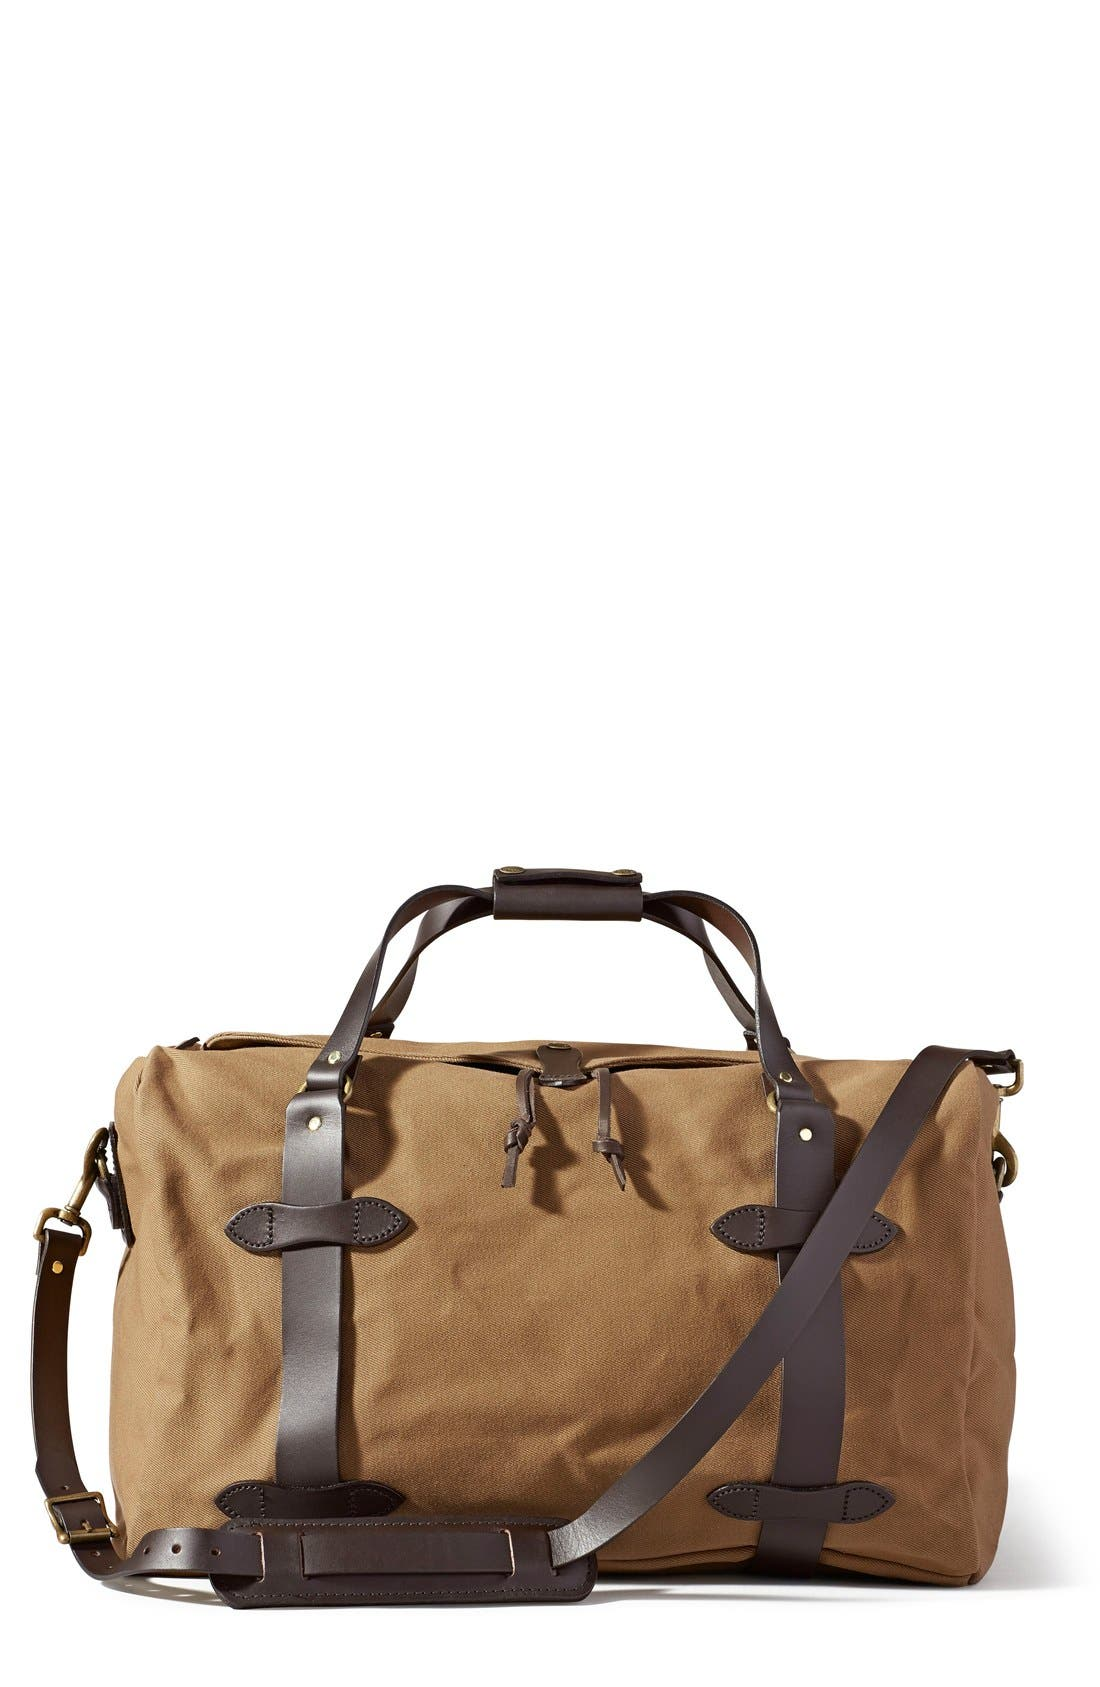 Medium Duffel Bag,                             Main thumbnail 1, color,                             Tan